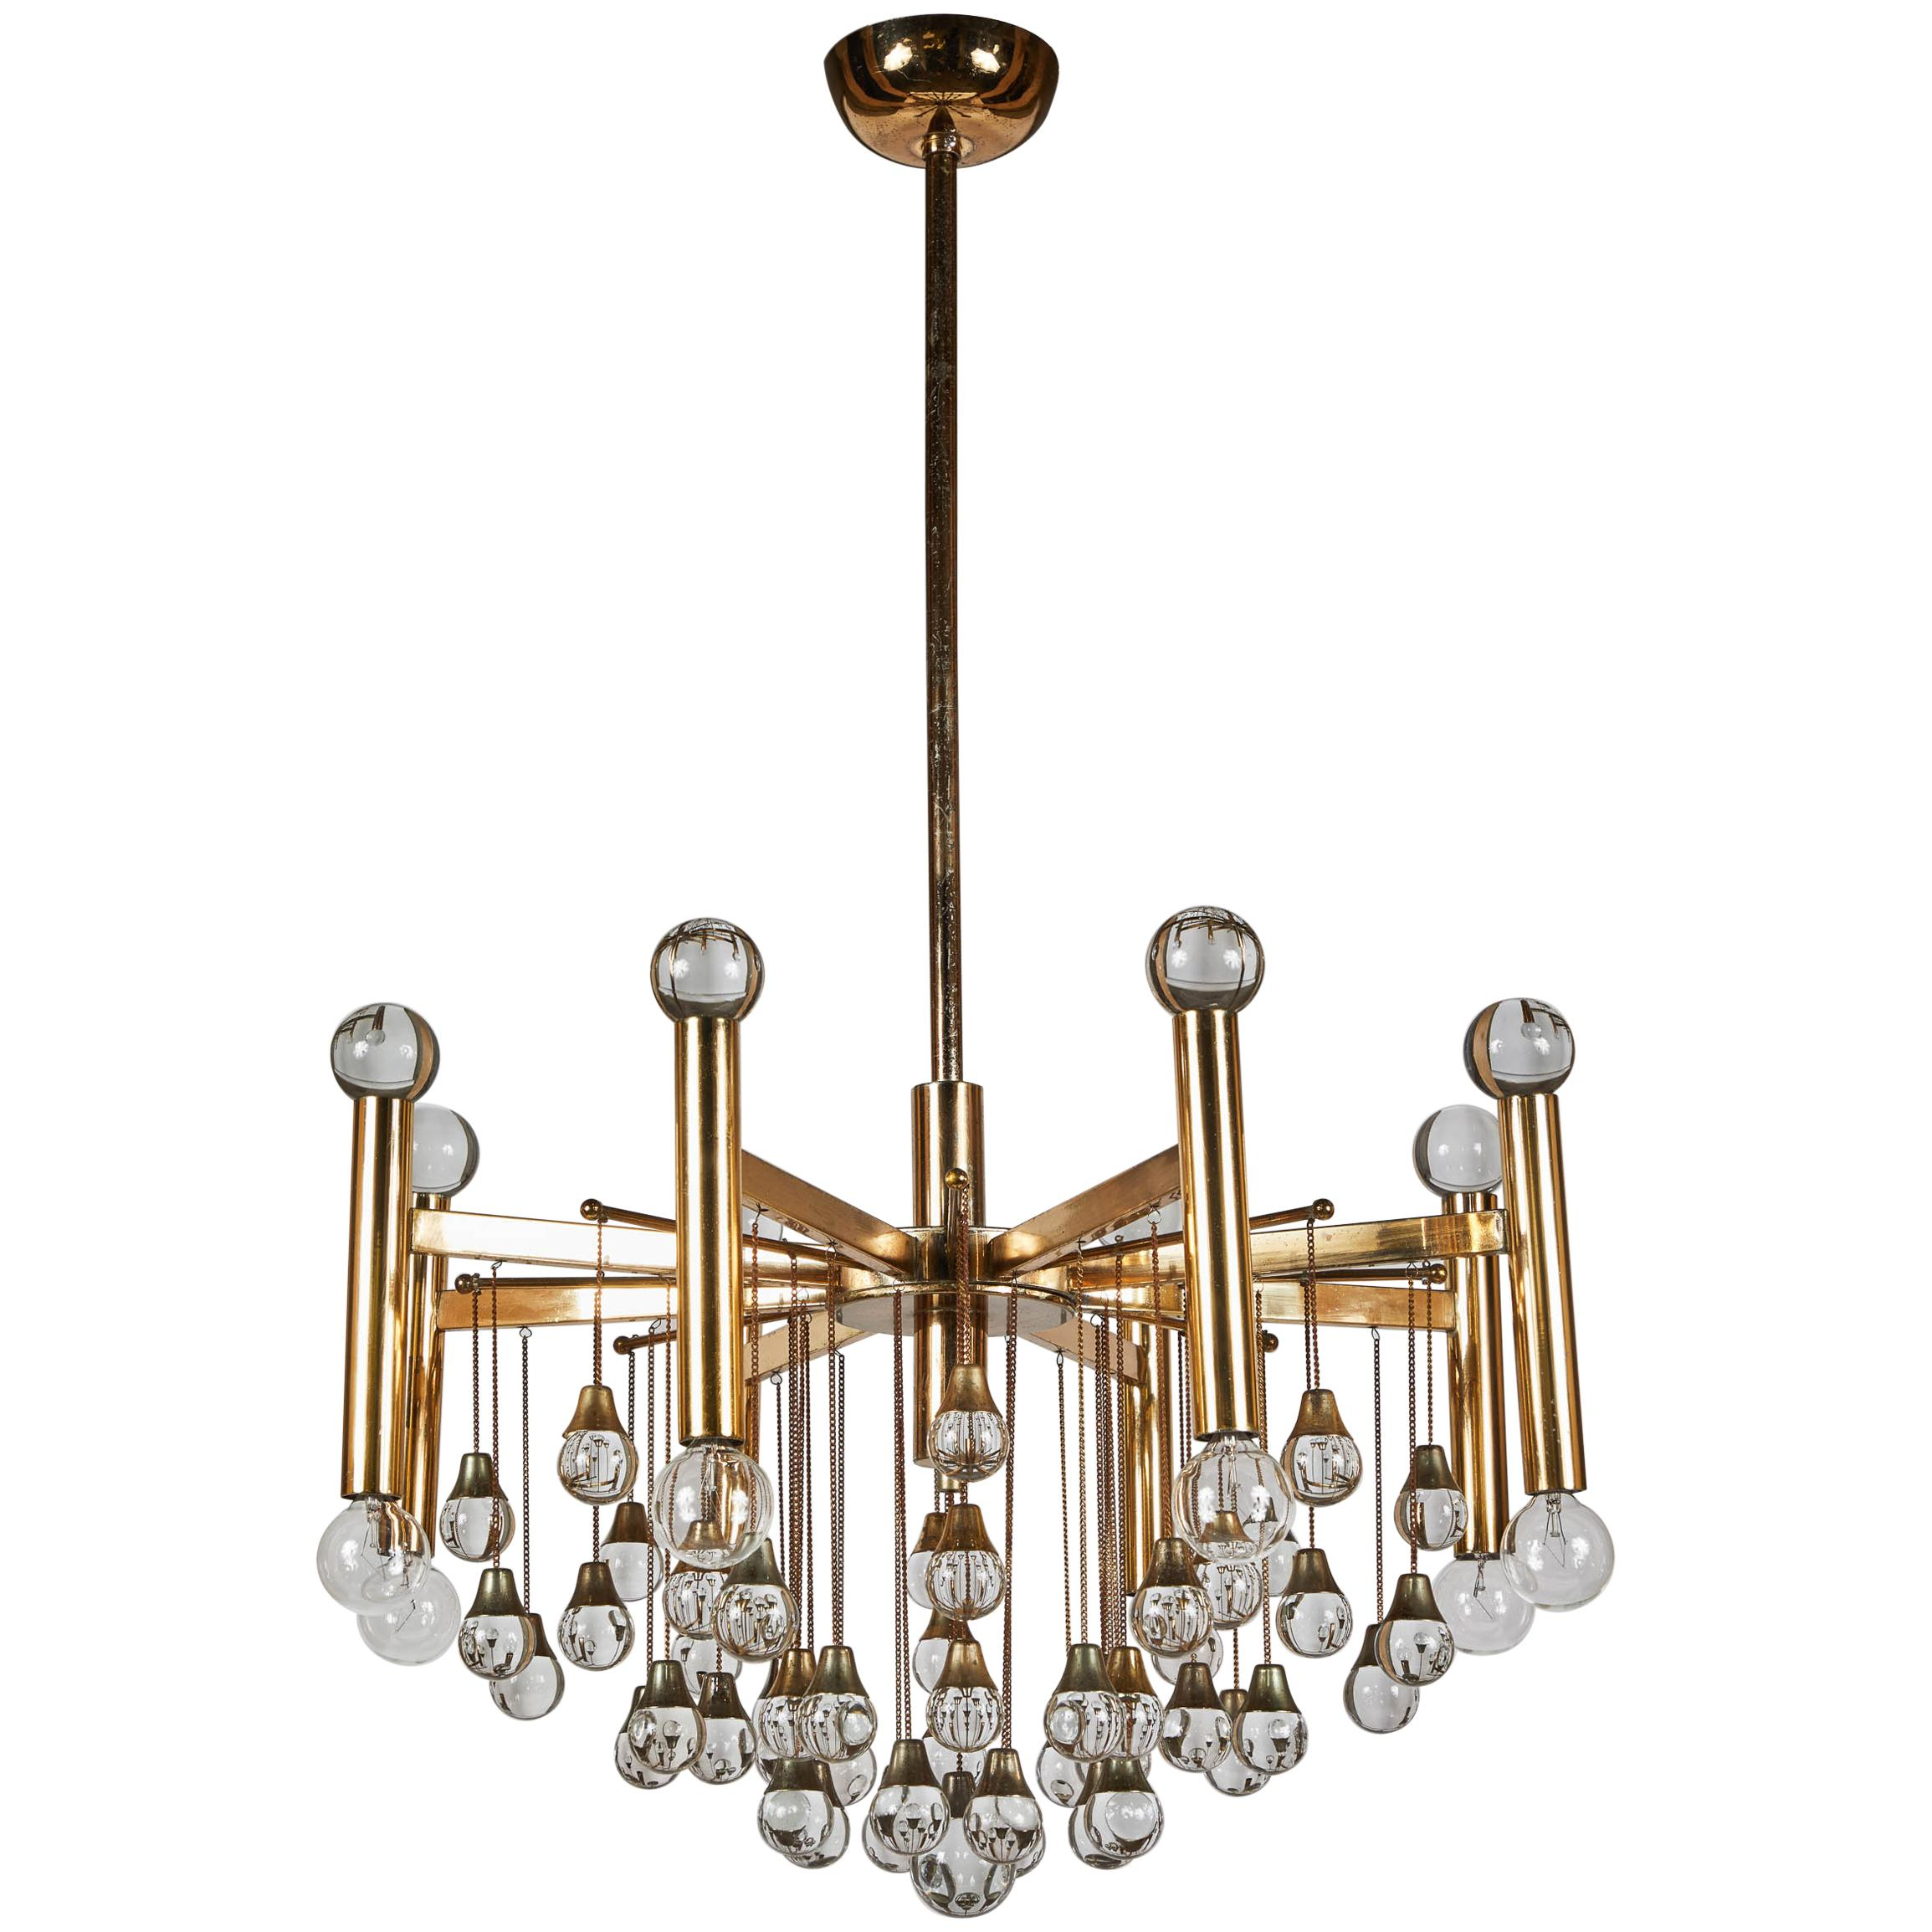 Beige Chandeliers and Pendants - 2,121 For Sale at 1stdibs